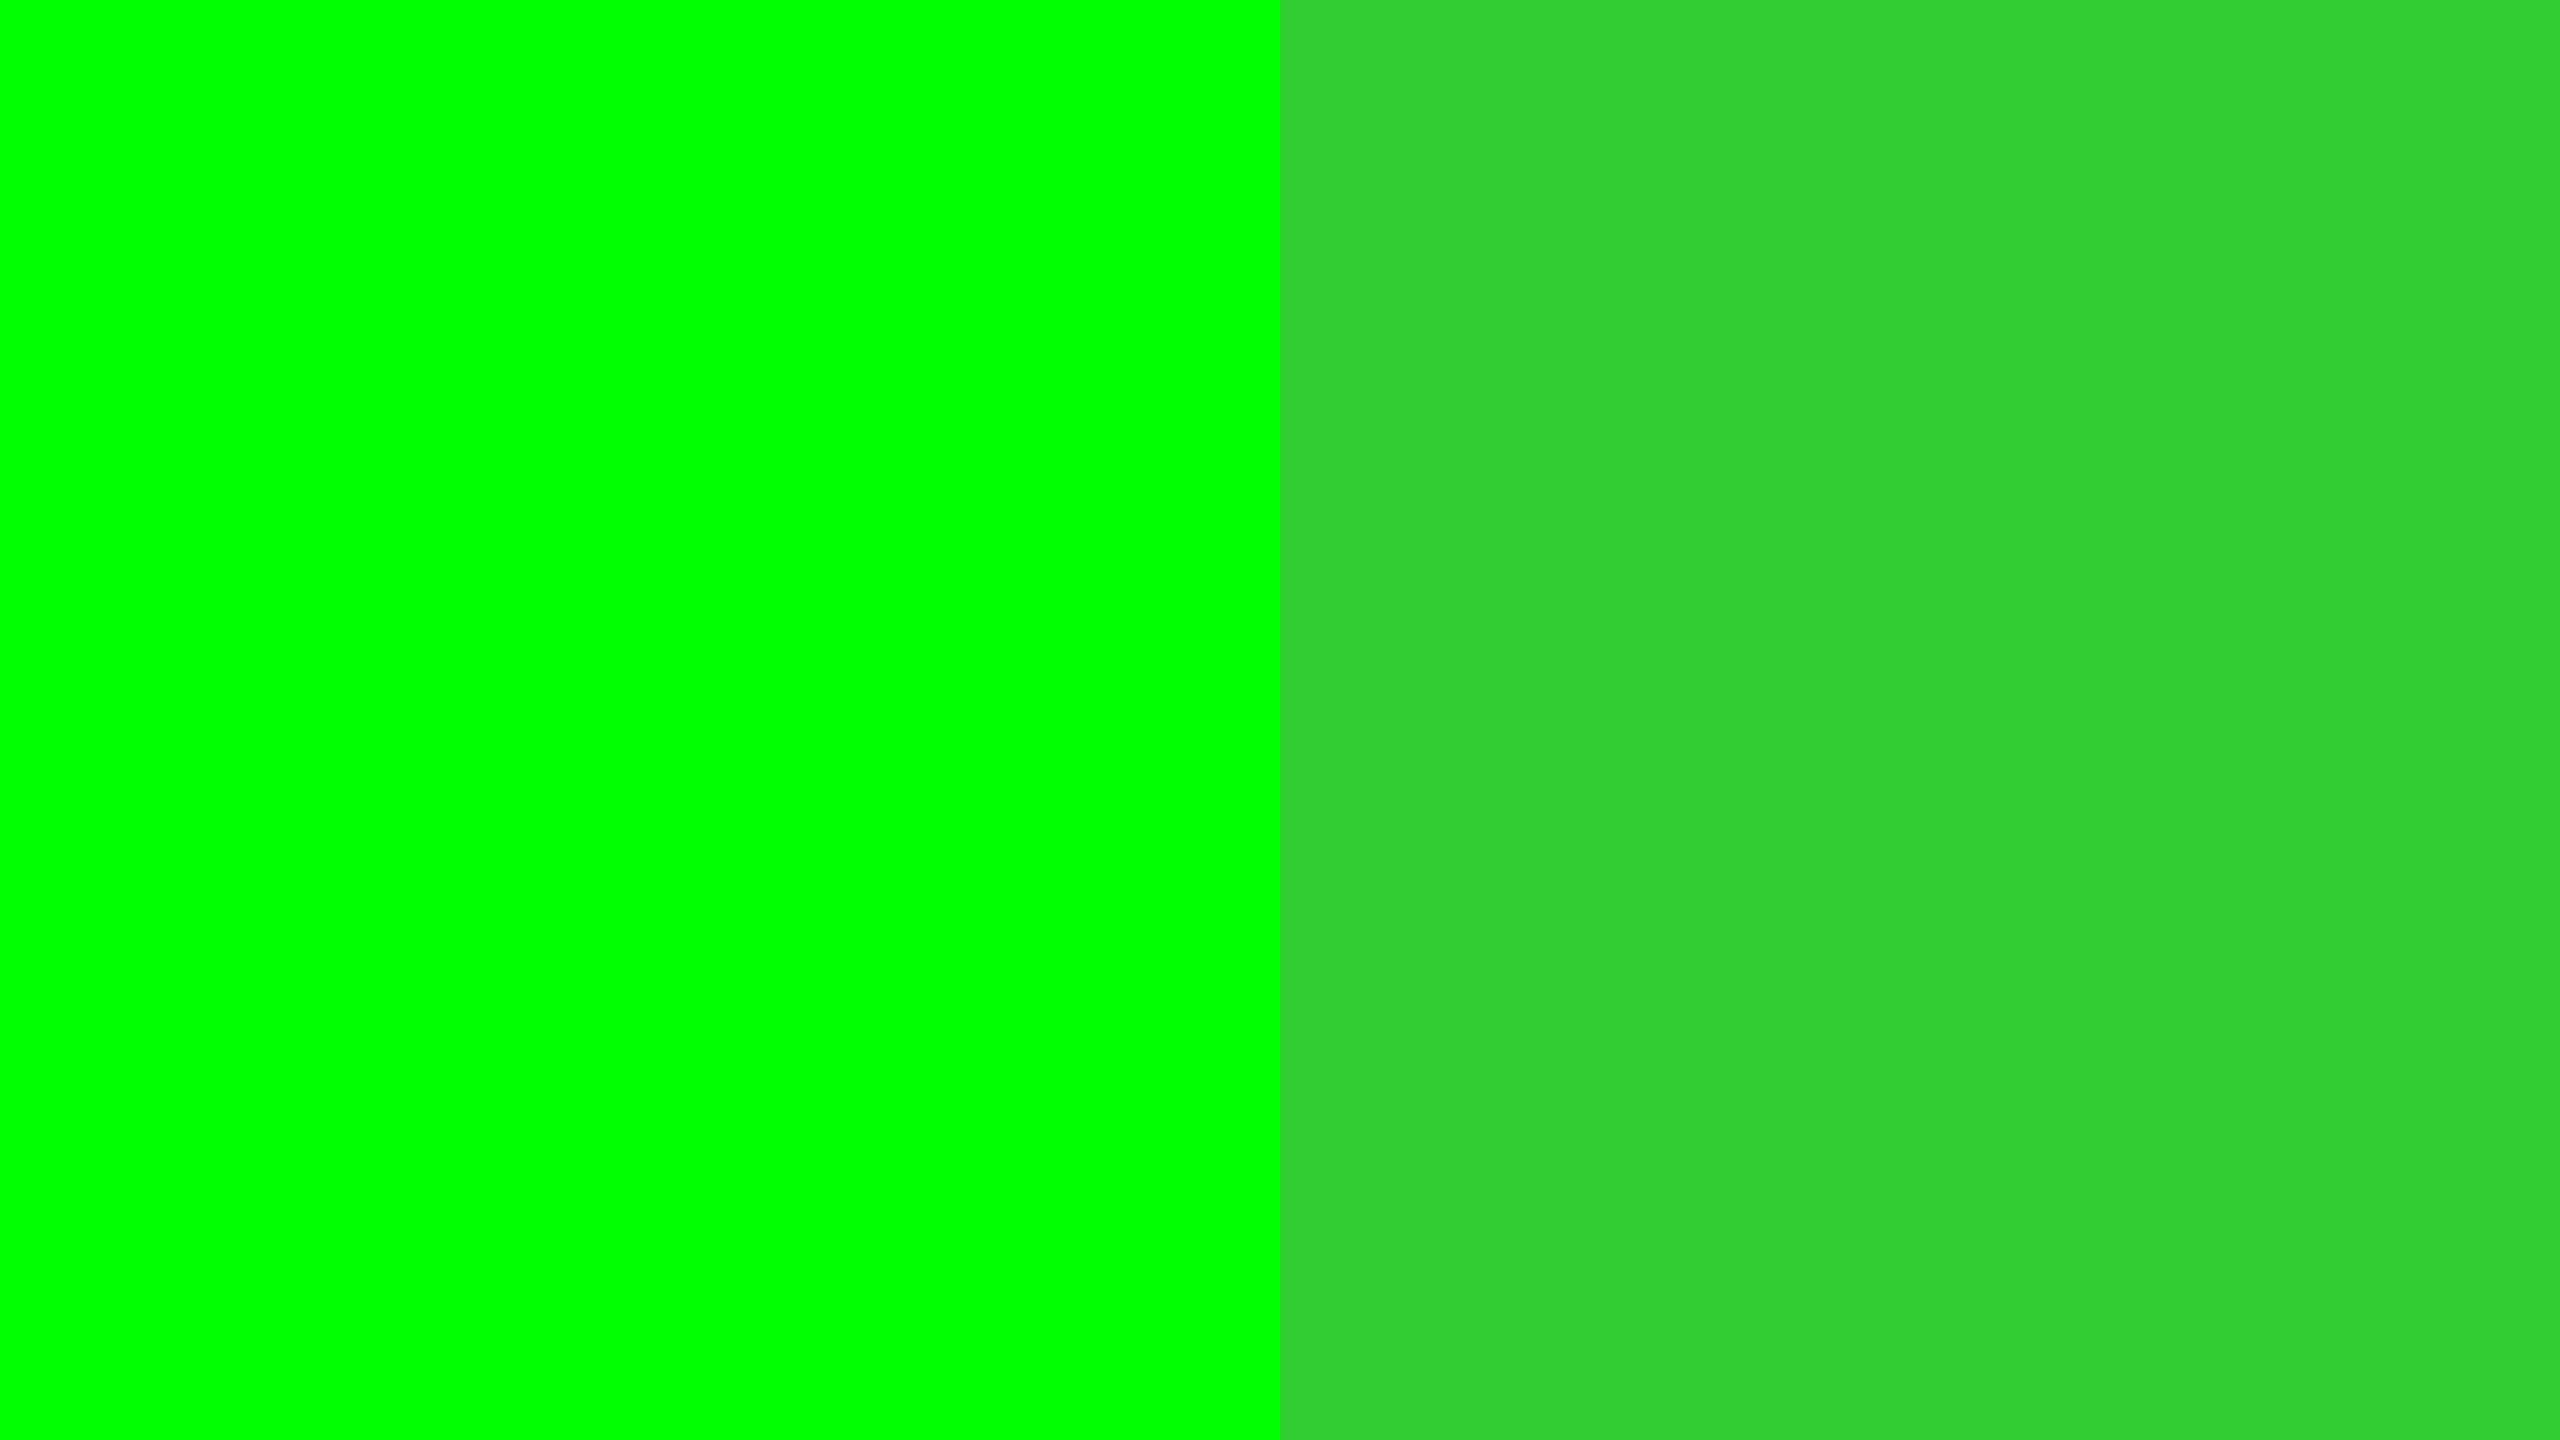 lime green background 183�� download free full hd wallpapers